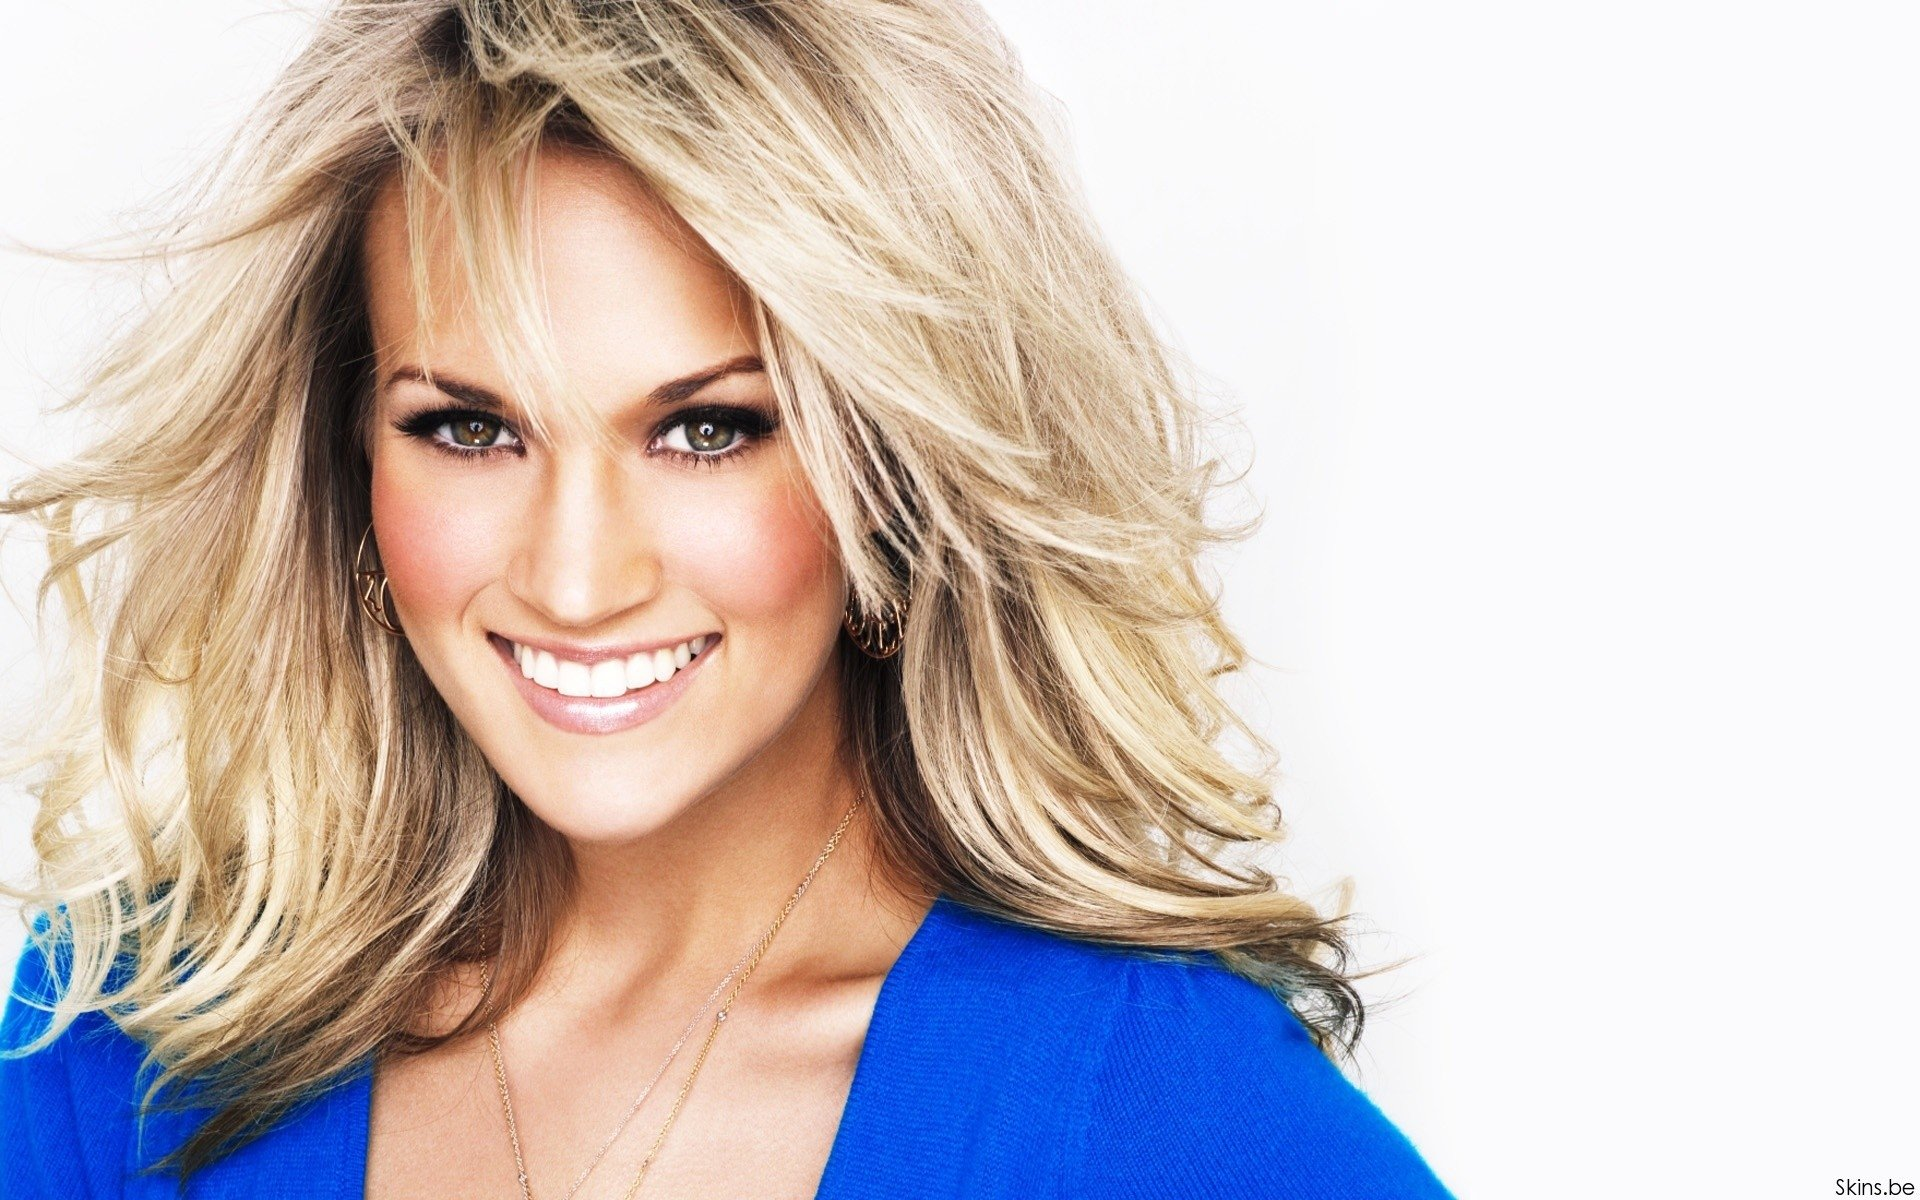 Carrie underwood full hd wallpaper and background image - Carrie underwood hd wallpaper ...